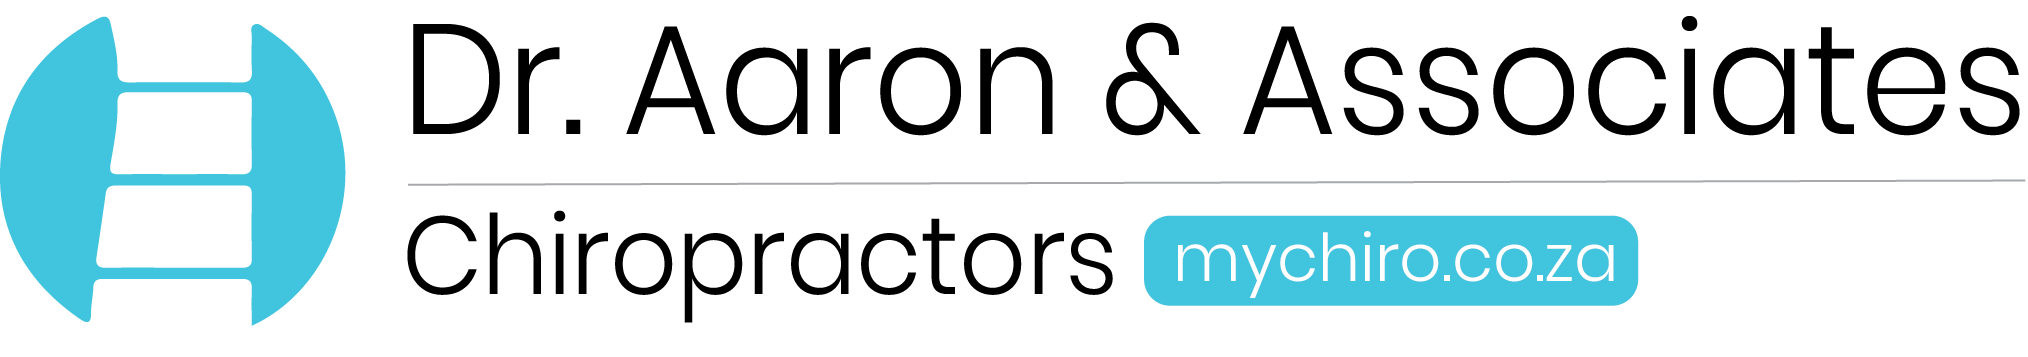 Meet Dr. Aaron and Associates New descriptive and Informative Logo. with dark grey font.